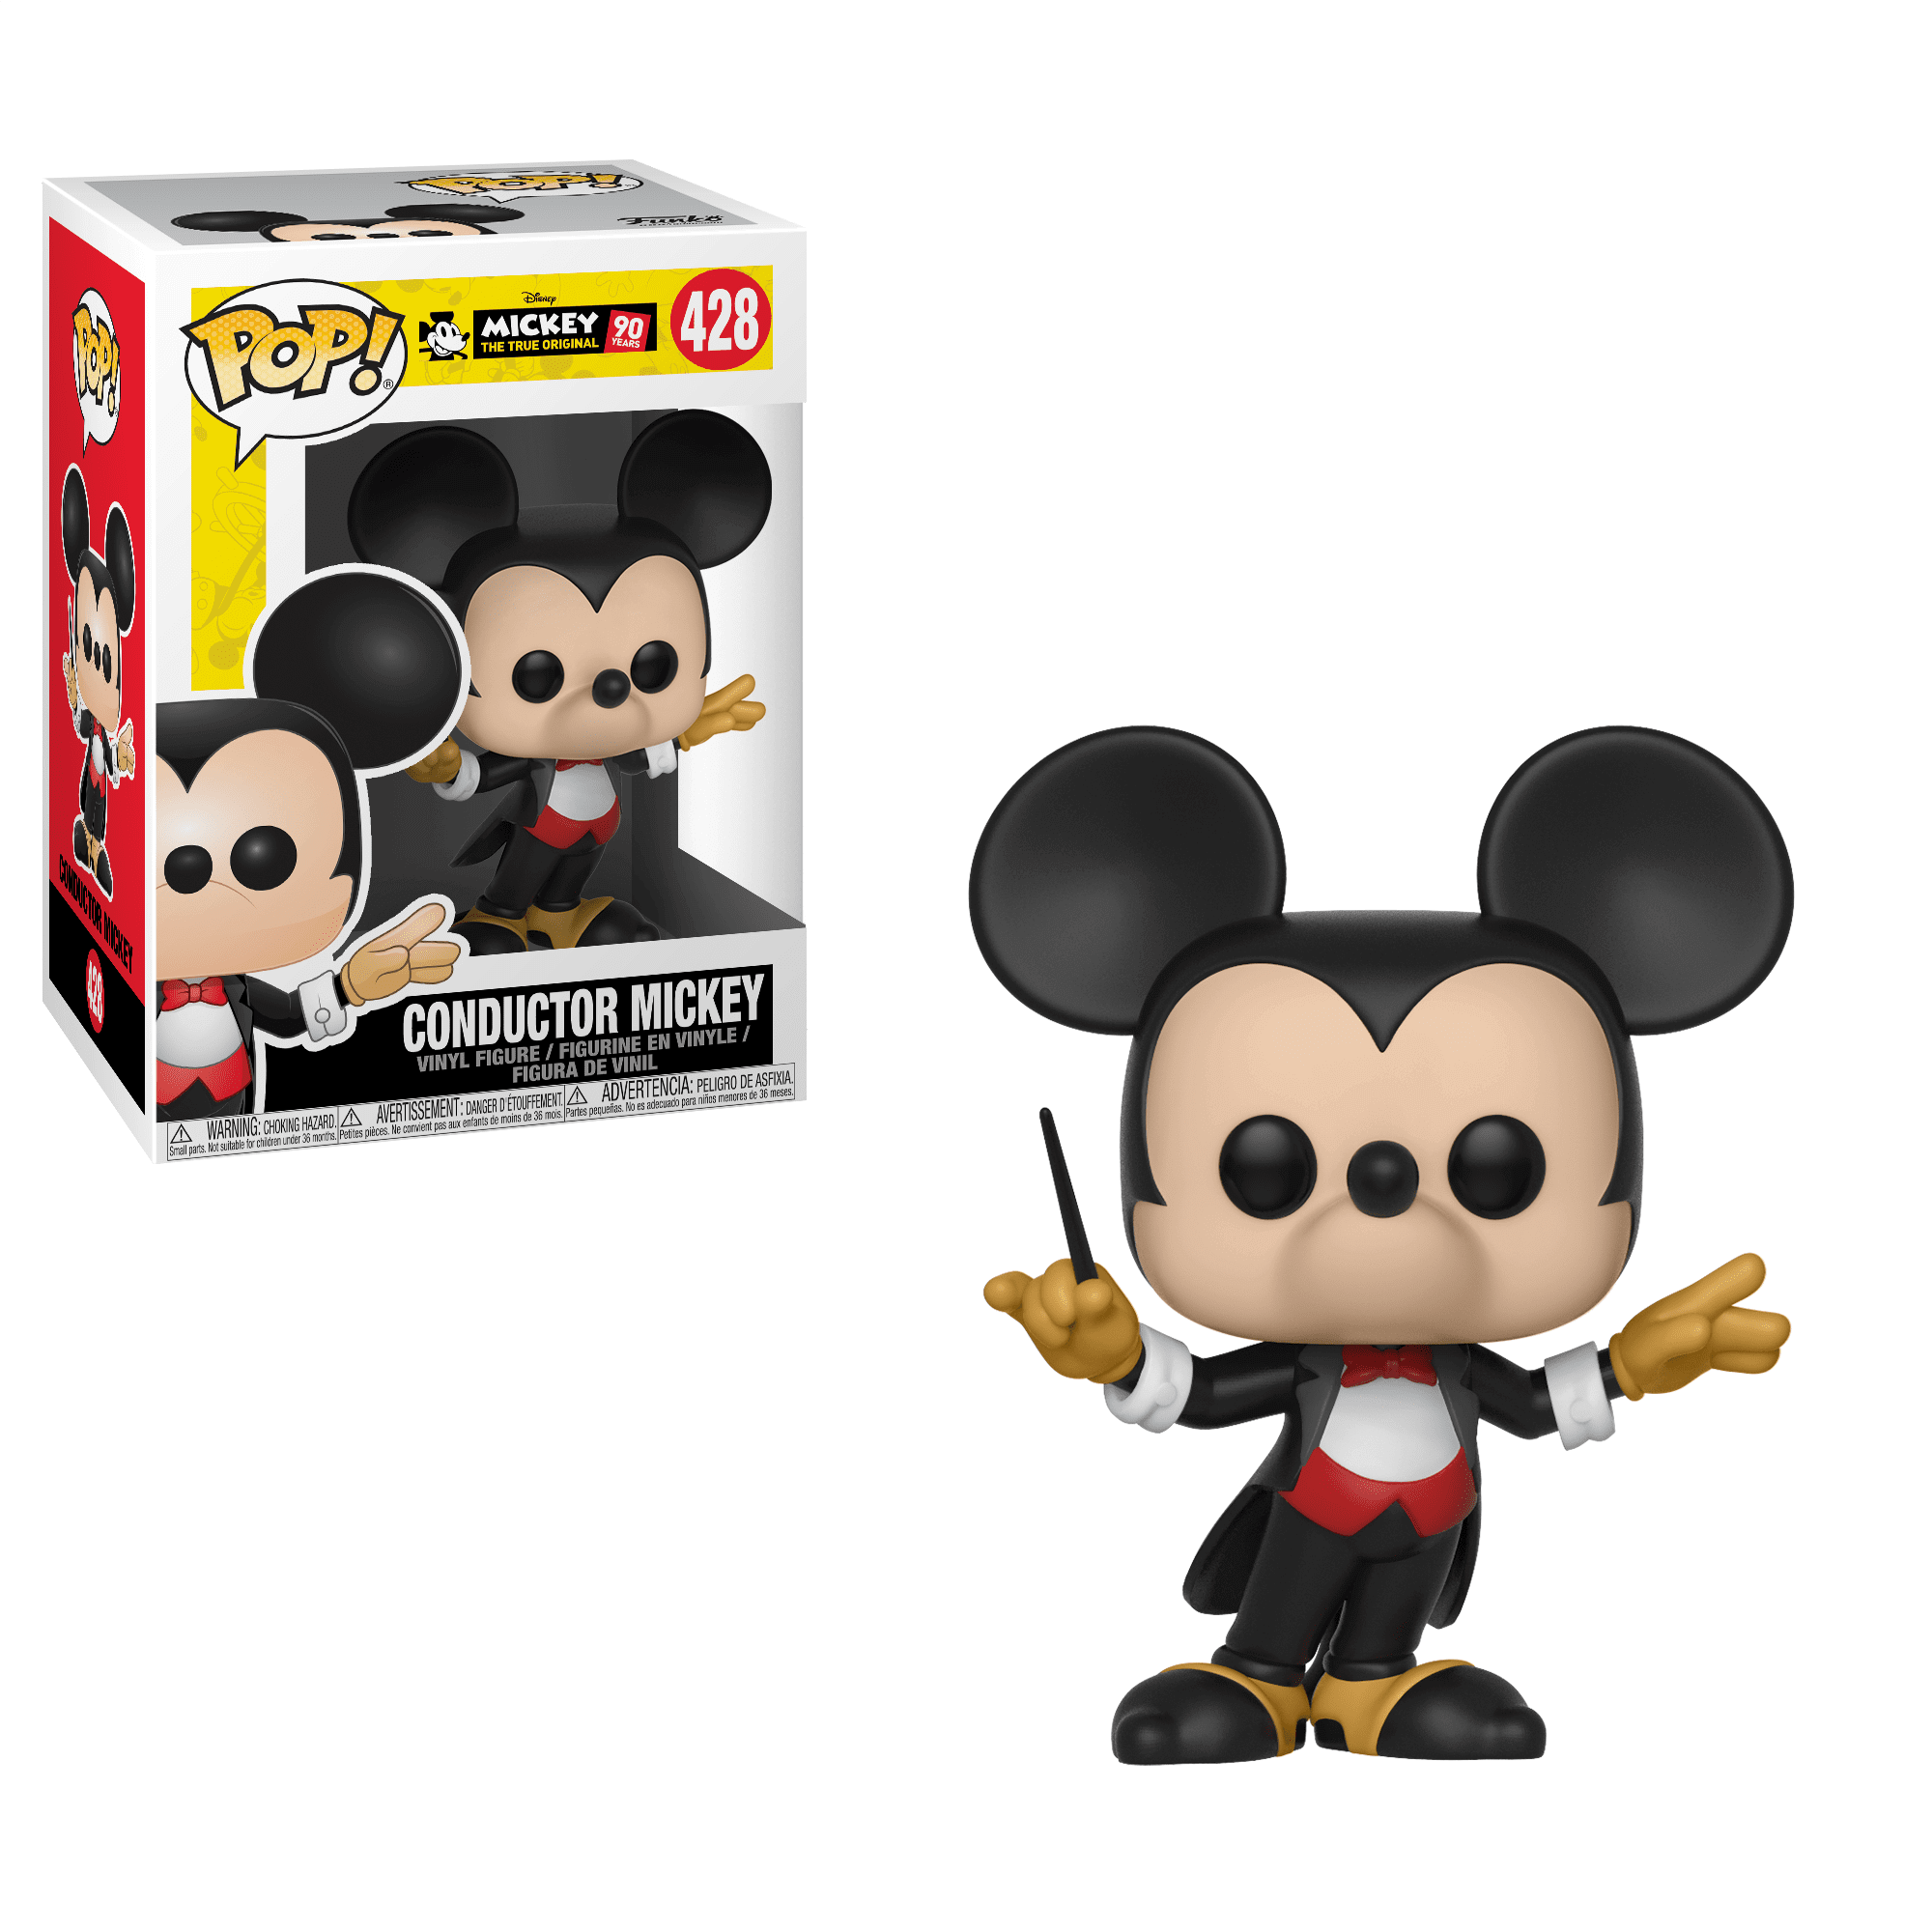 Mickey Mouse Conductor #428 - Funko Pop! Disney